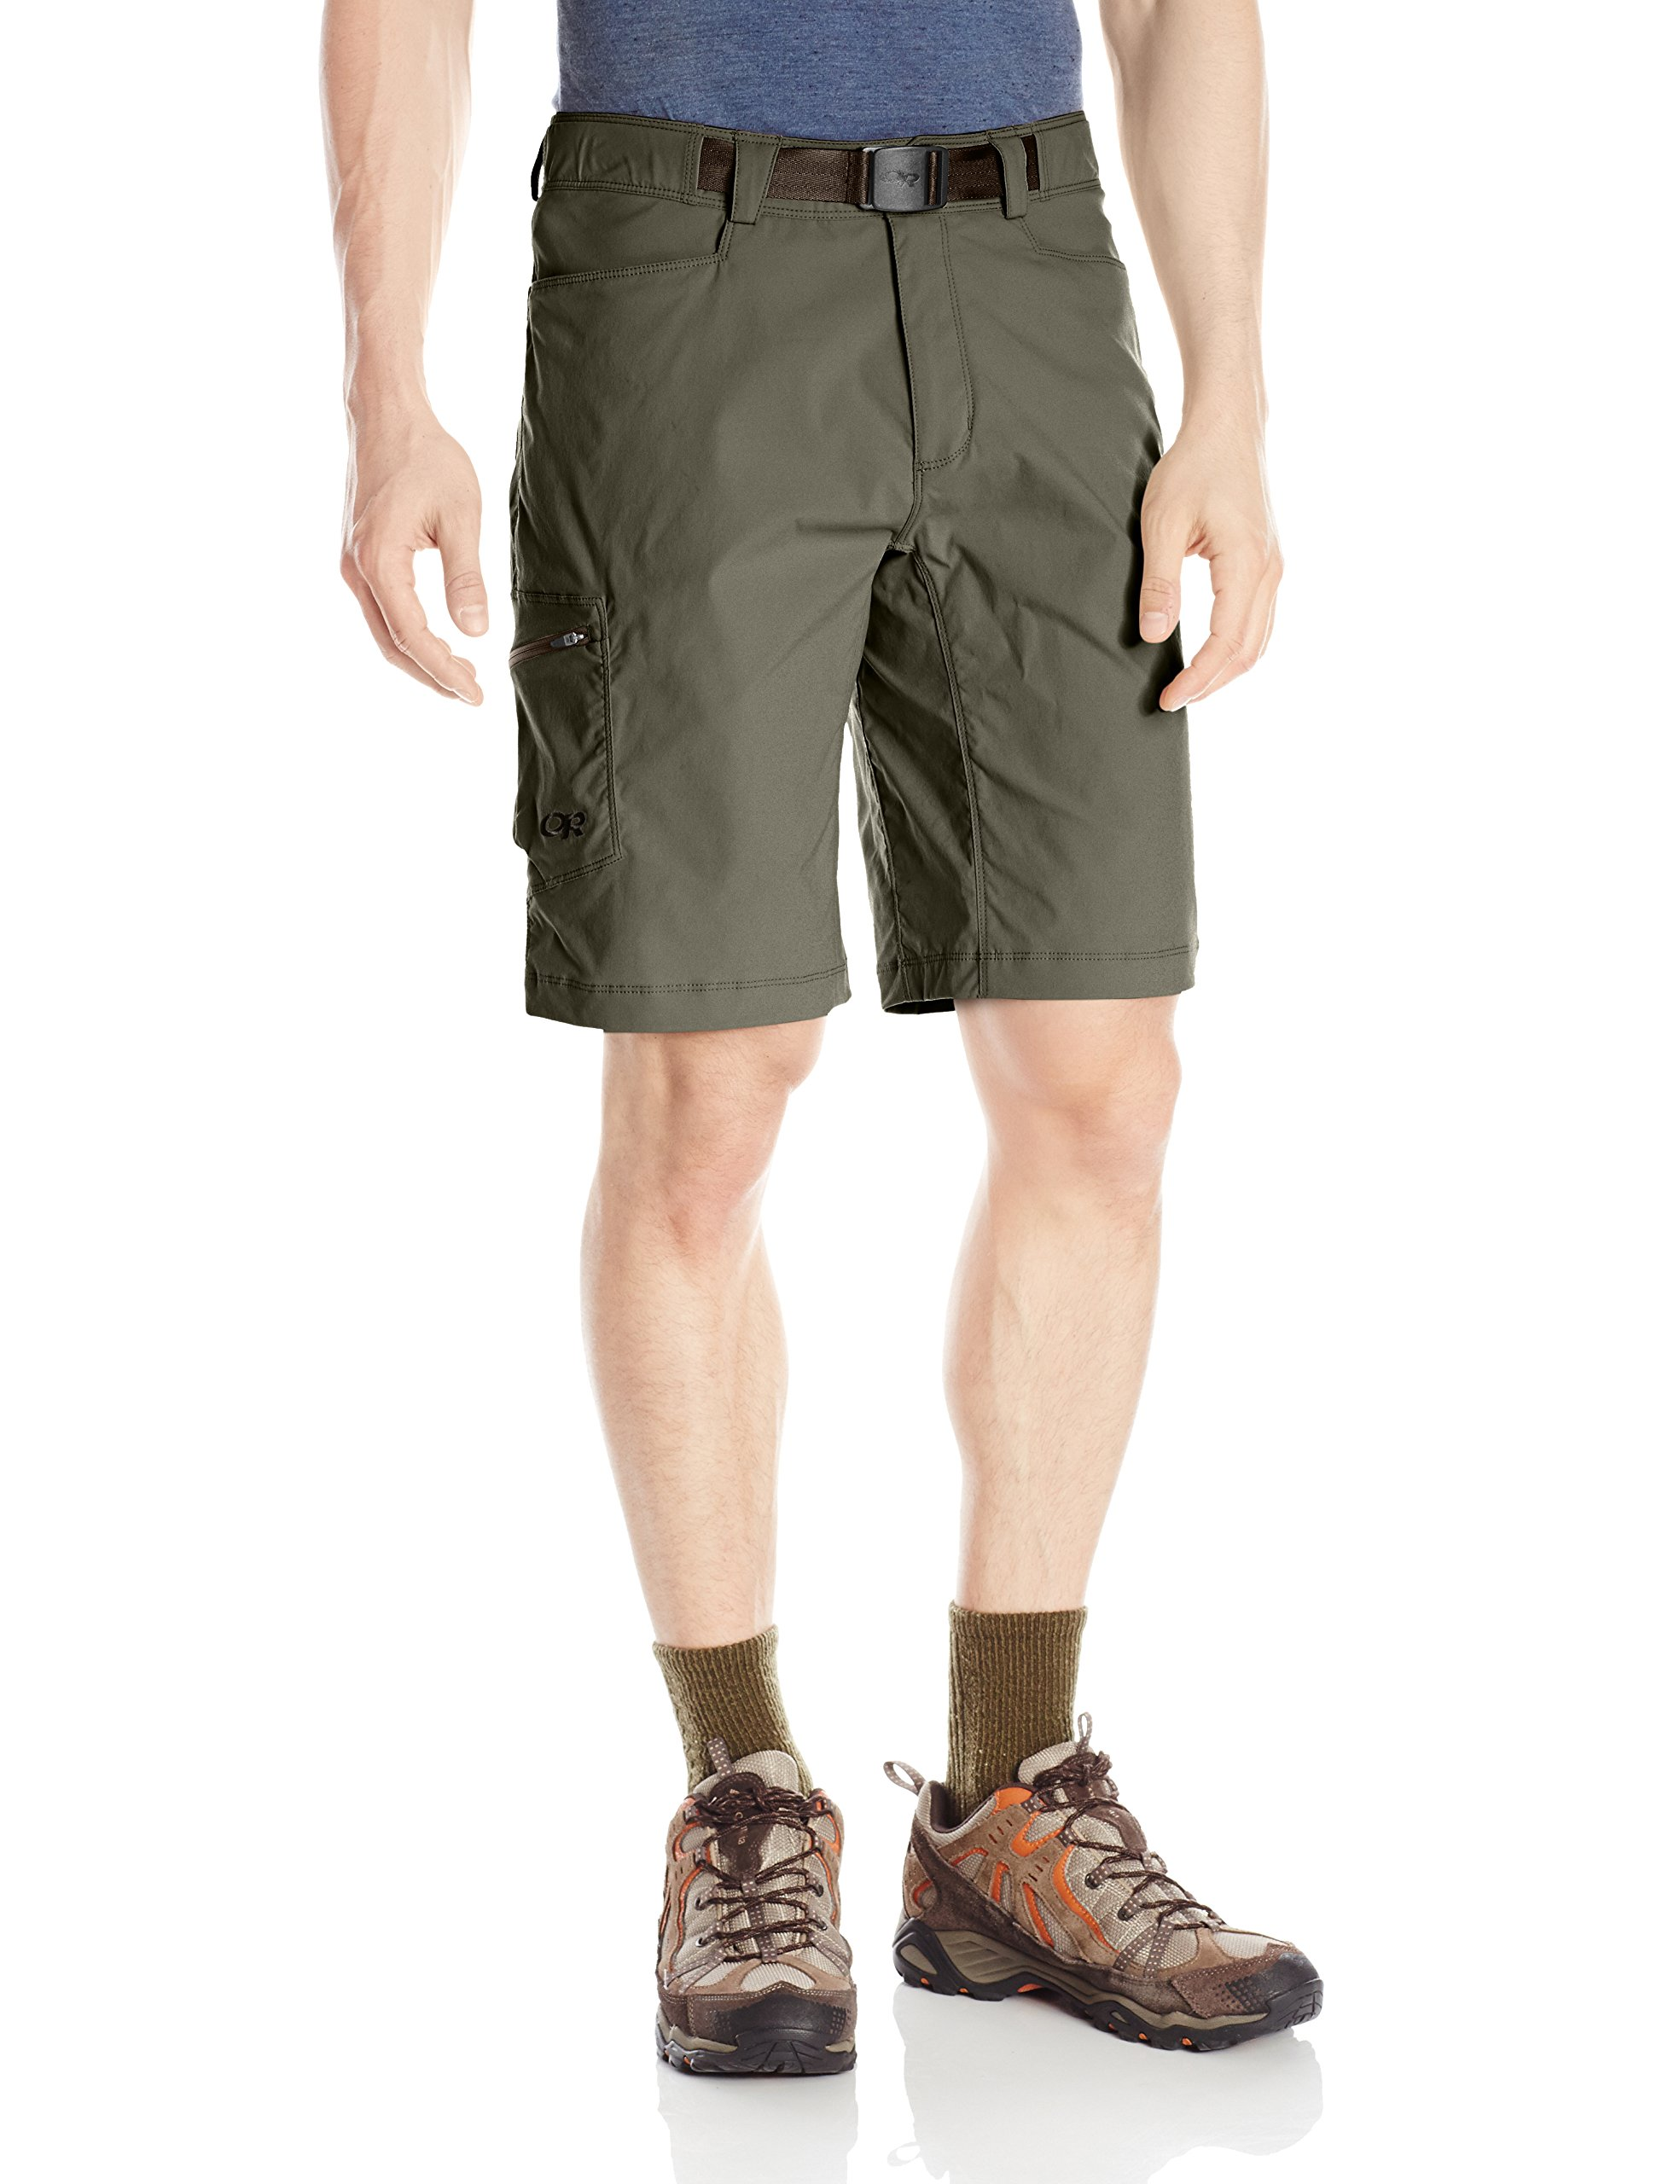 Outdoor Research Men's Equinox Shorts, Mushroom, 38 by Outdoor Research